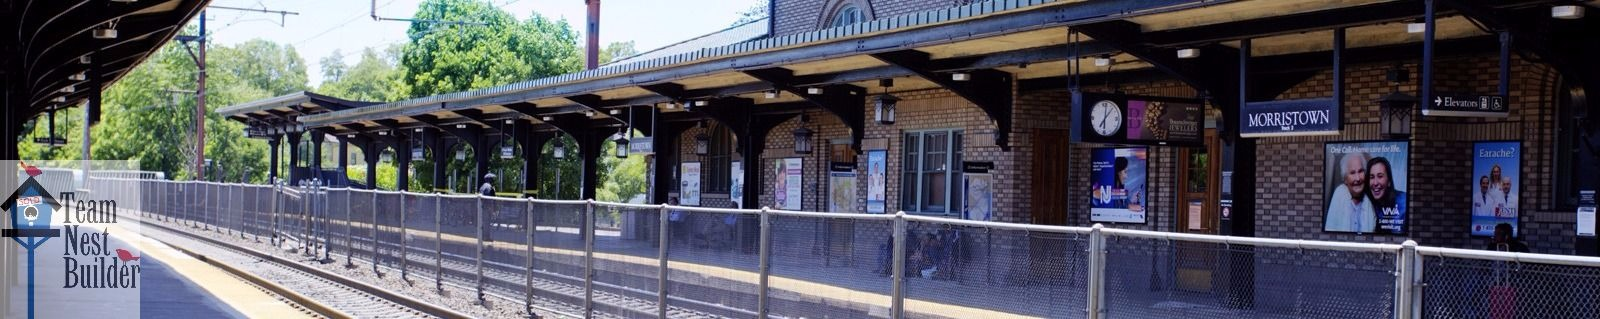 You could live just 5 minutes from the Morristown train station!